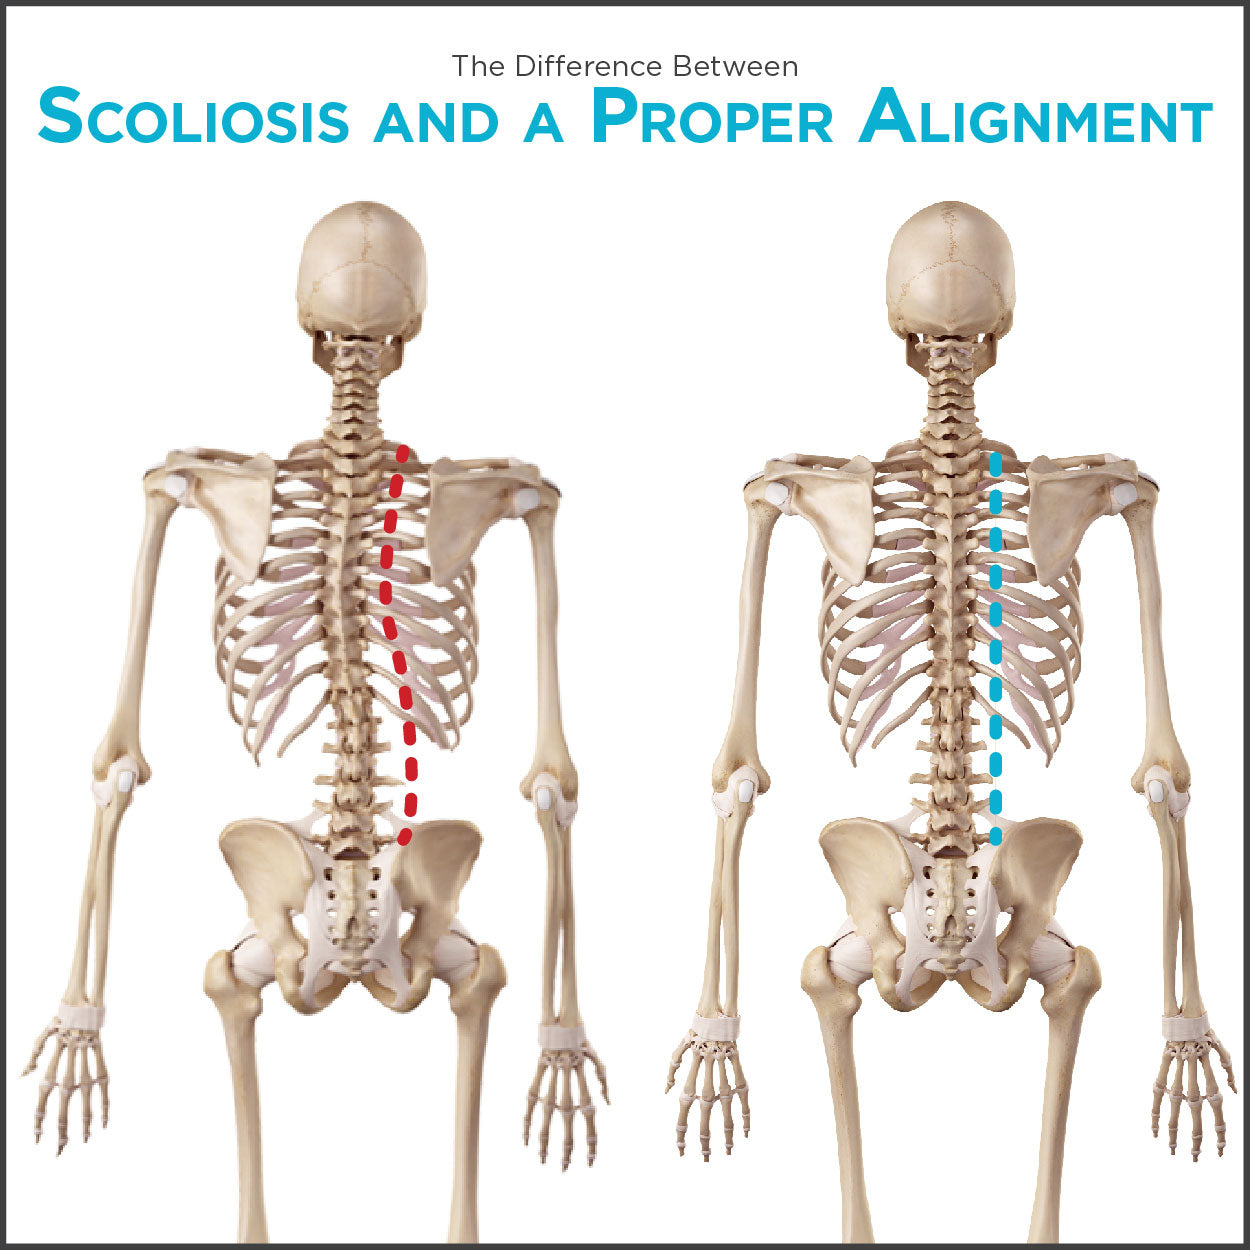 comparison chart of what scoliosis looks like vs how a healthy spine looks